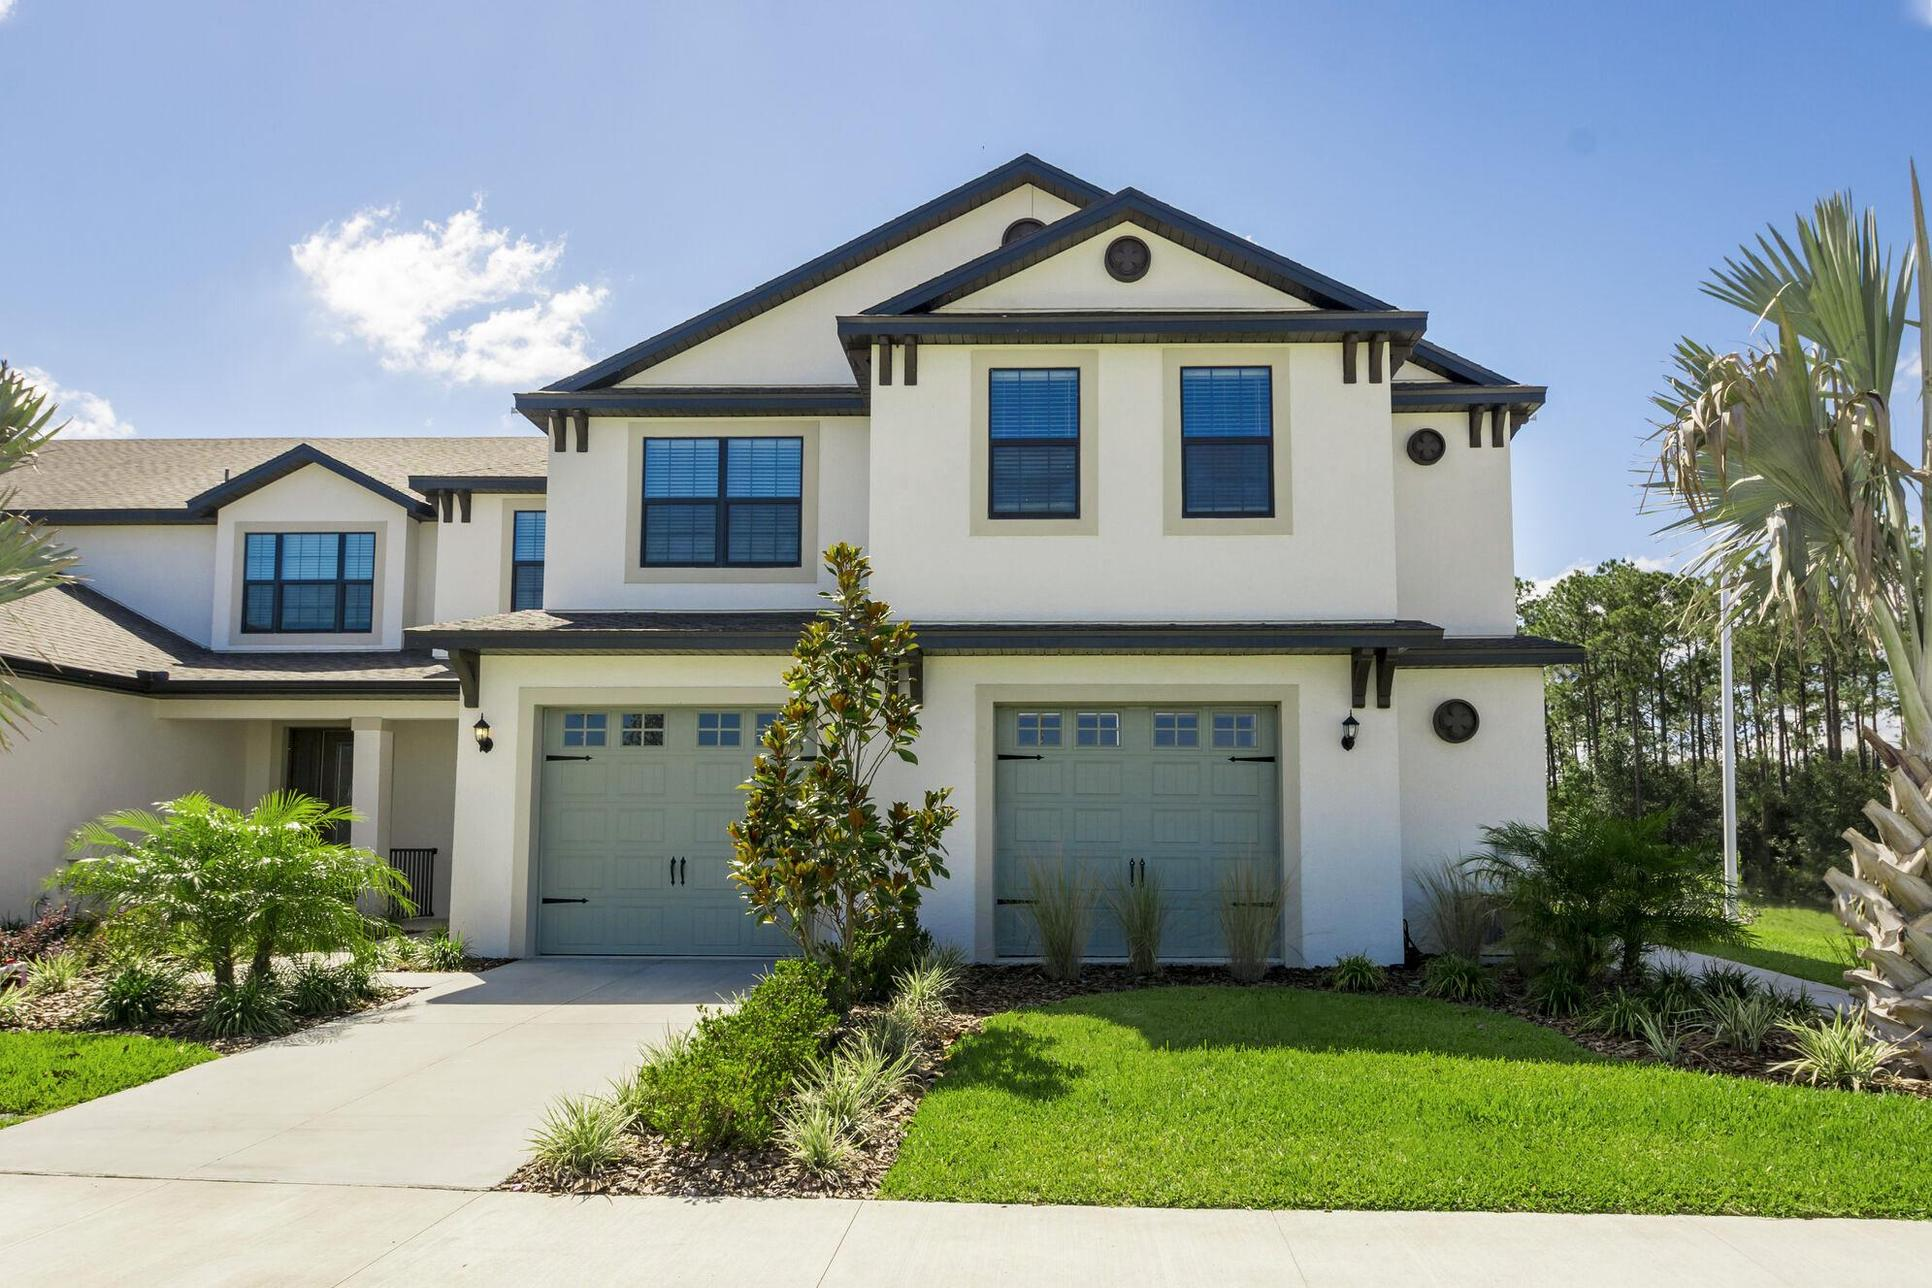 LGI Homes at Mirada:Master-planned community near Wesley Chapel